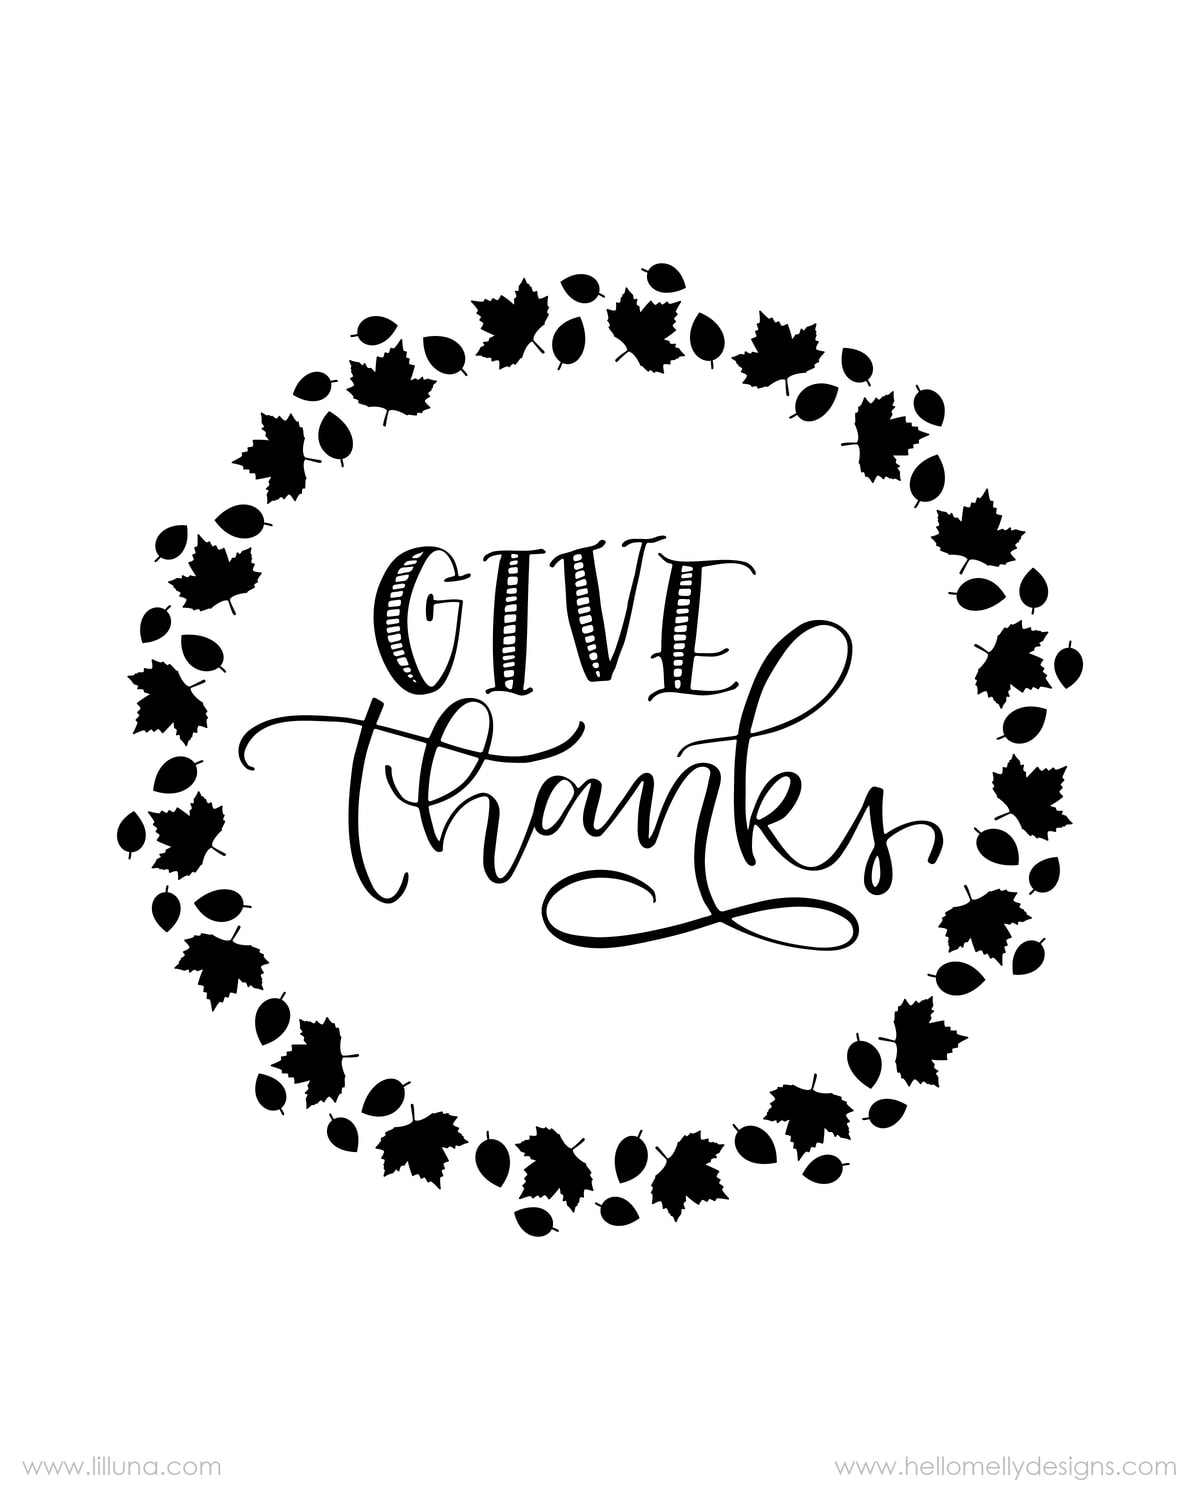 FREE Give Thanks Prints available to download in 3 colors - perfect to print, frame and display for Thanksgiving!